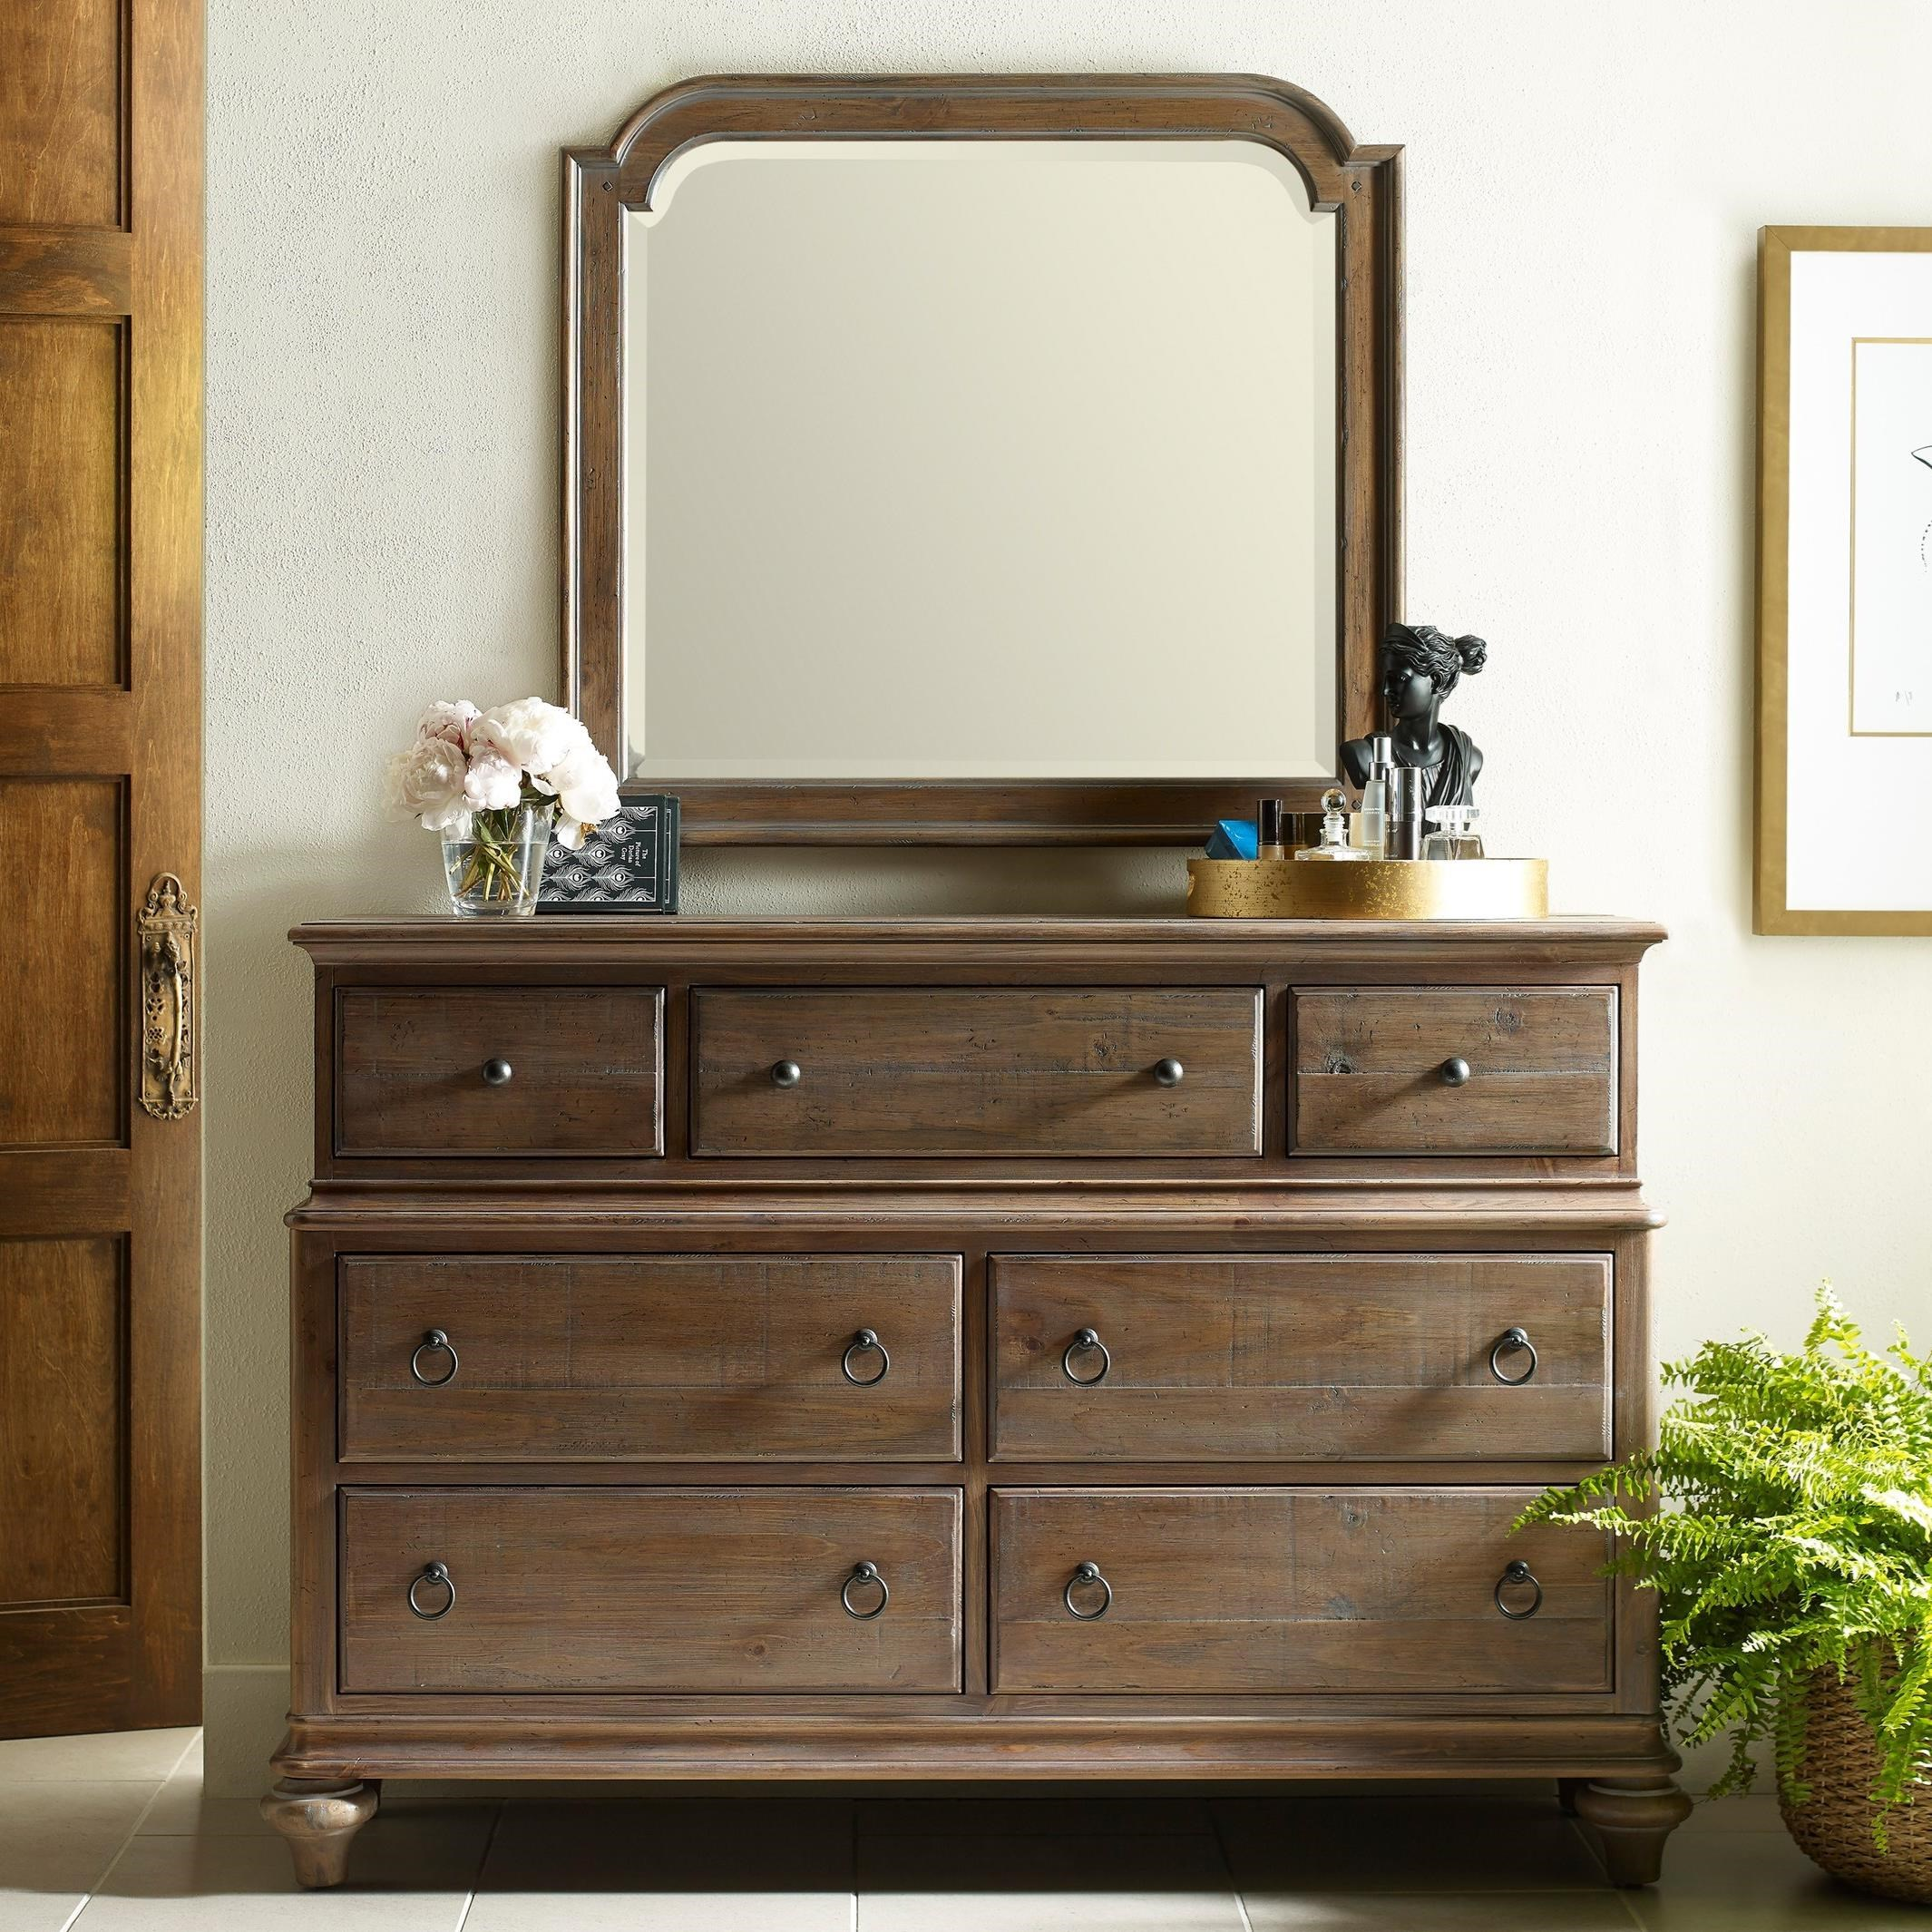 Weatherford Dresser and Mirror Combo by Kincaid Furniture at Home Collections Furniture